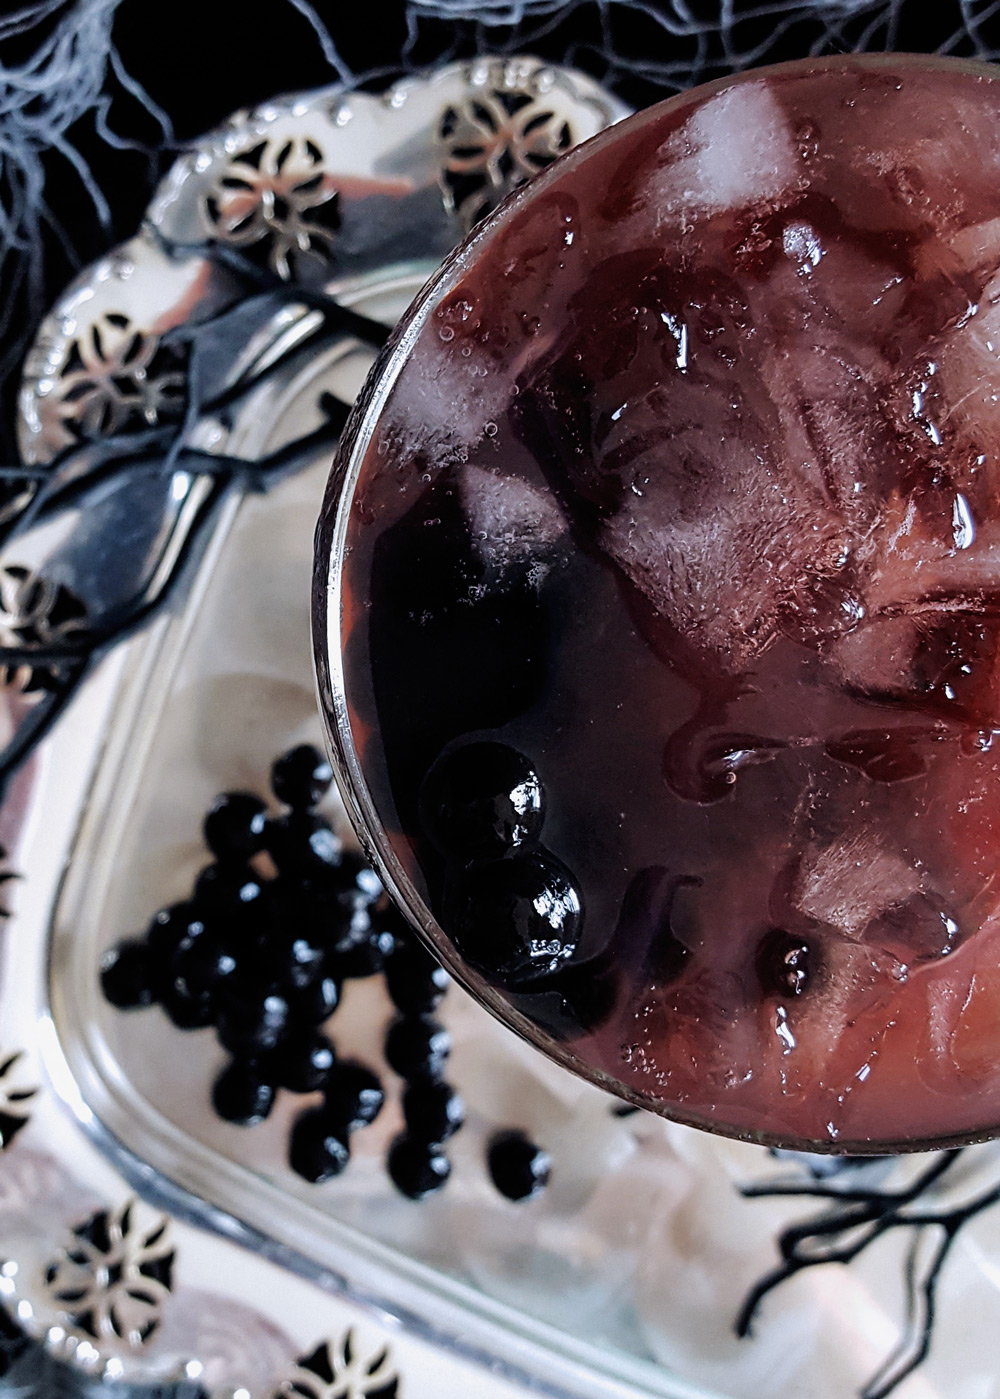 Under the Scarlet Sea | An Earl Grey Bourbon Pomegranate Punch